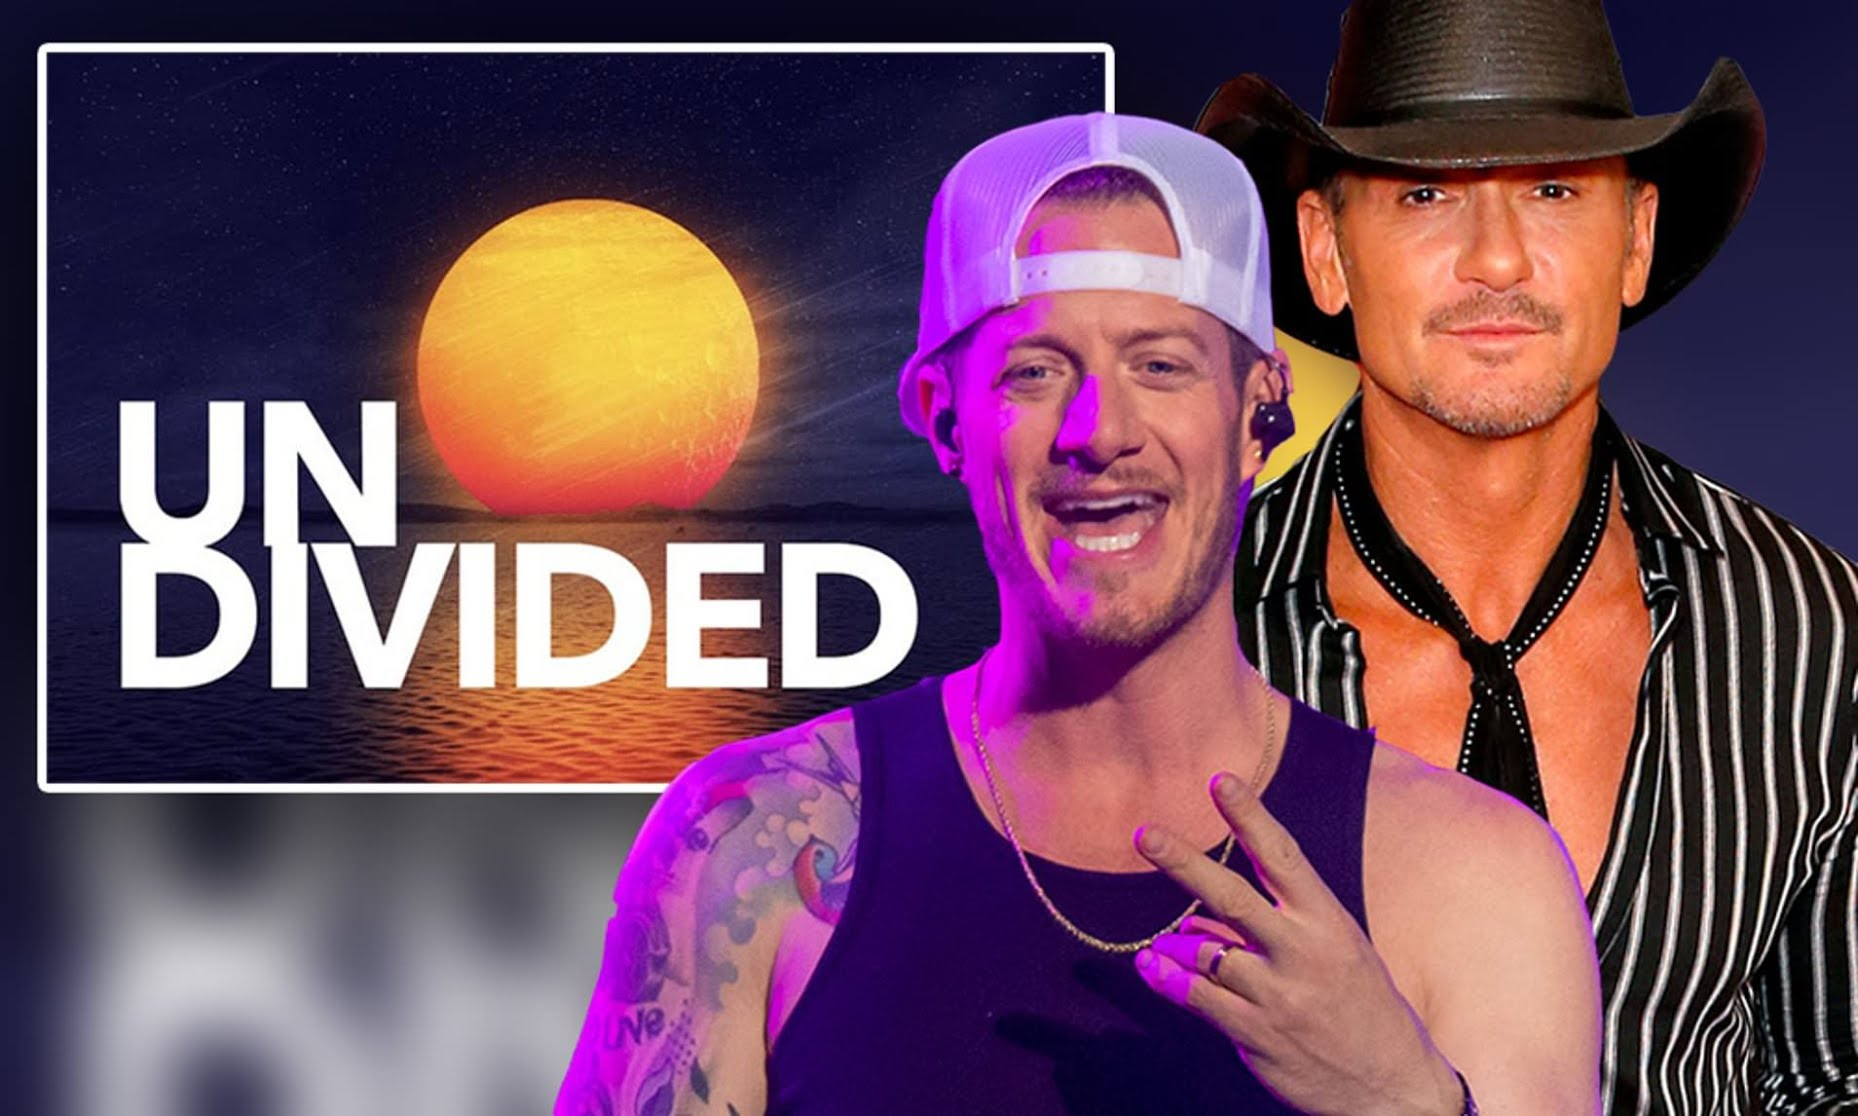 Country music icons Tim McGraw and Tyler Hubbard